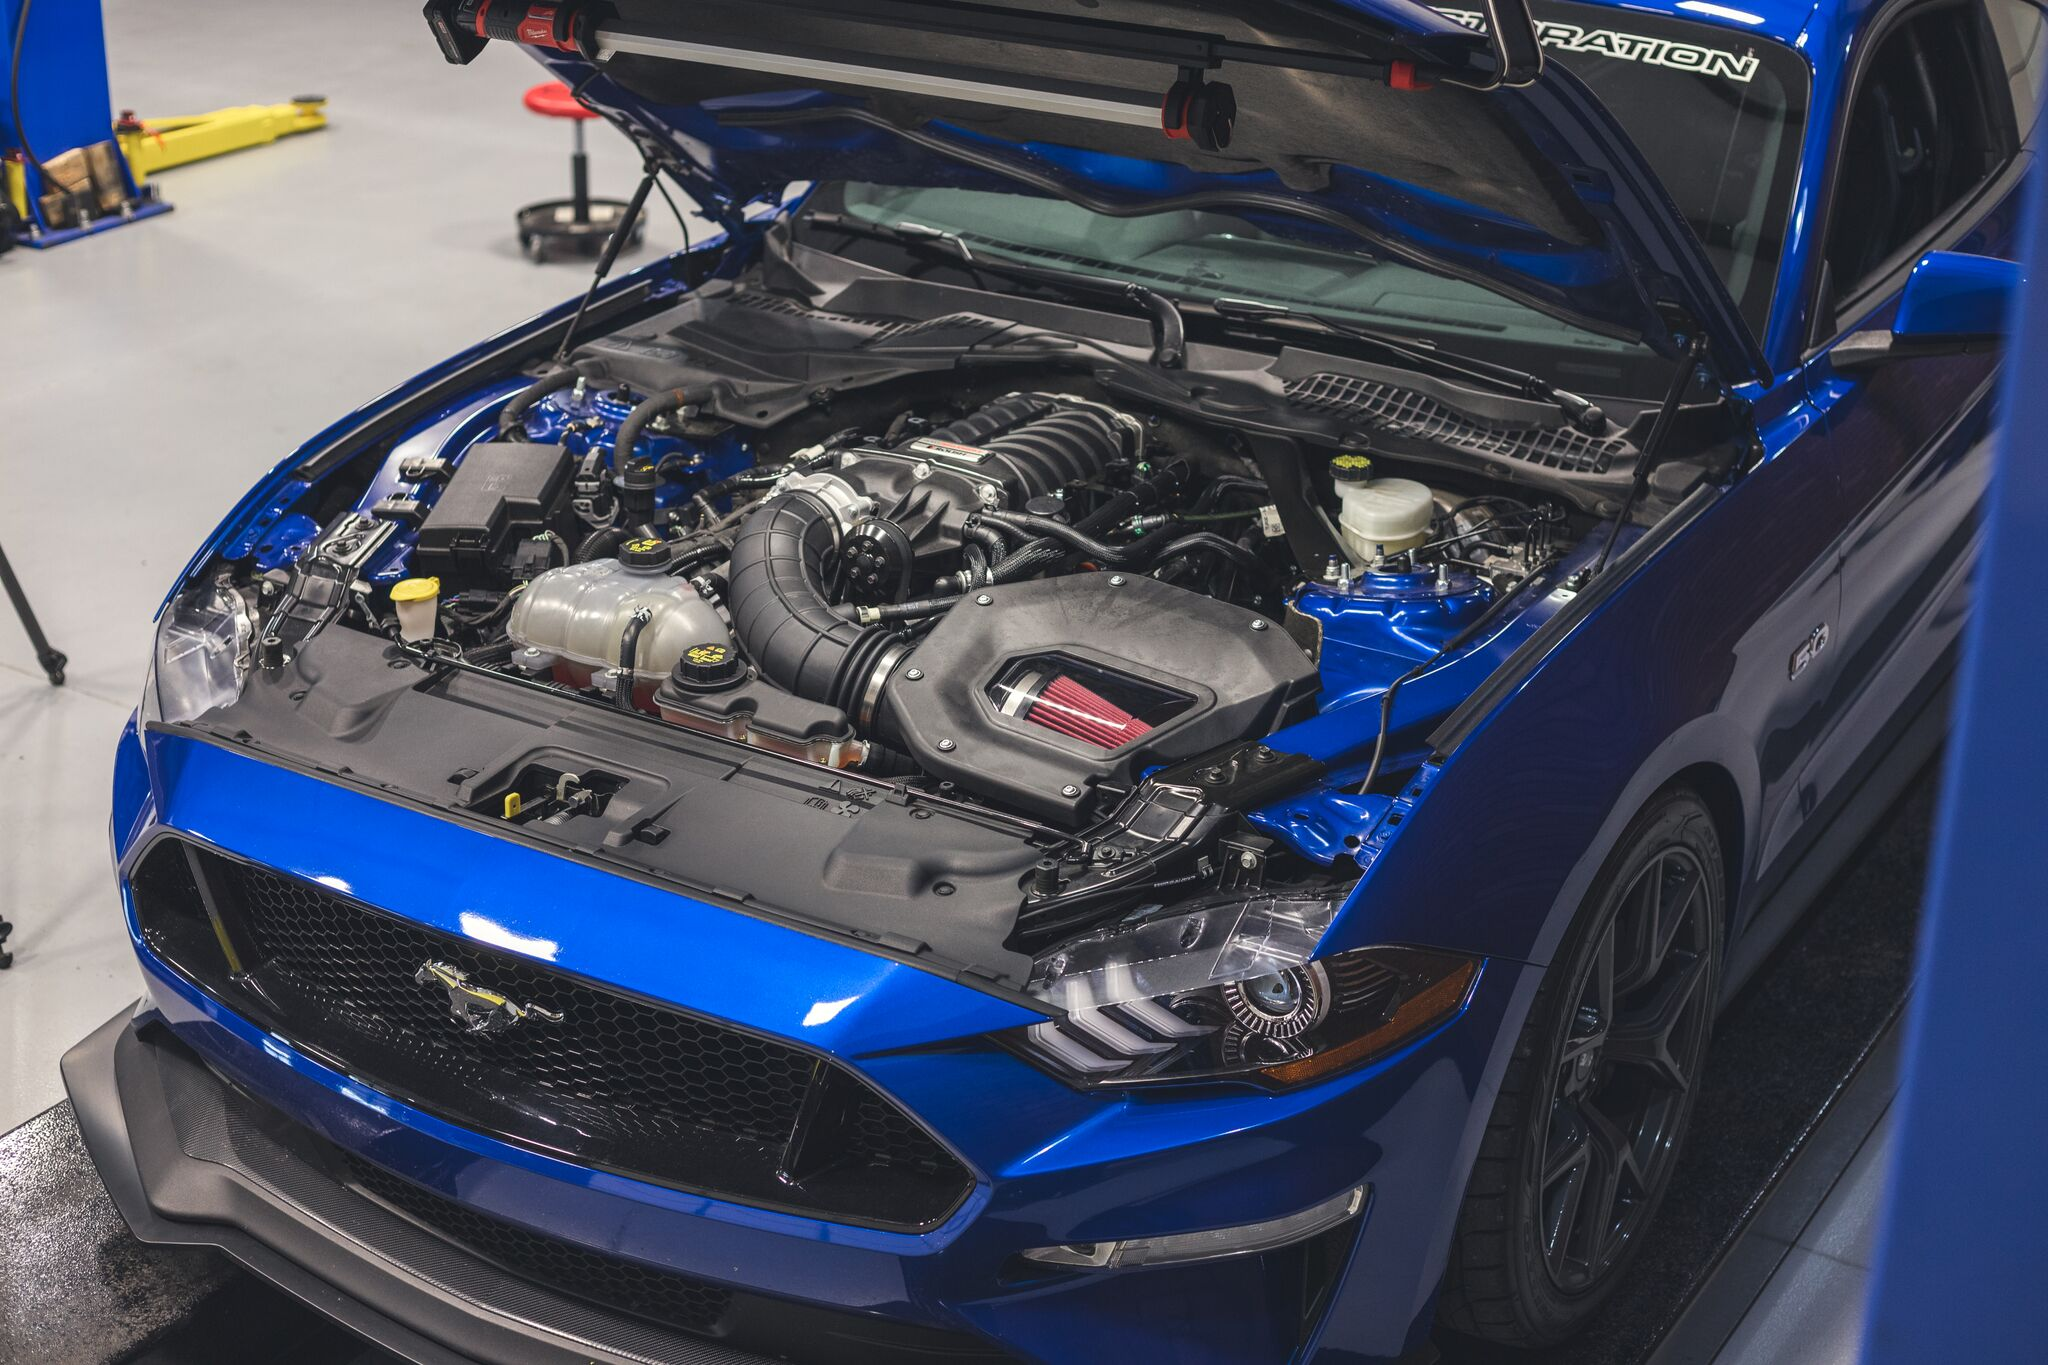 LMR Shop Car Build - 2018 Blue Mustang GT - LMR Shop Car Build - 2018 Blue Mustang GT